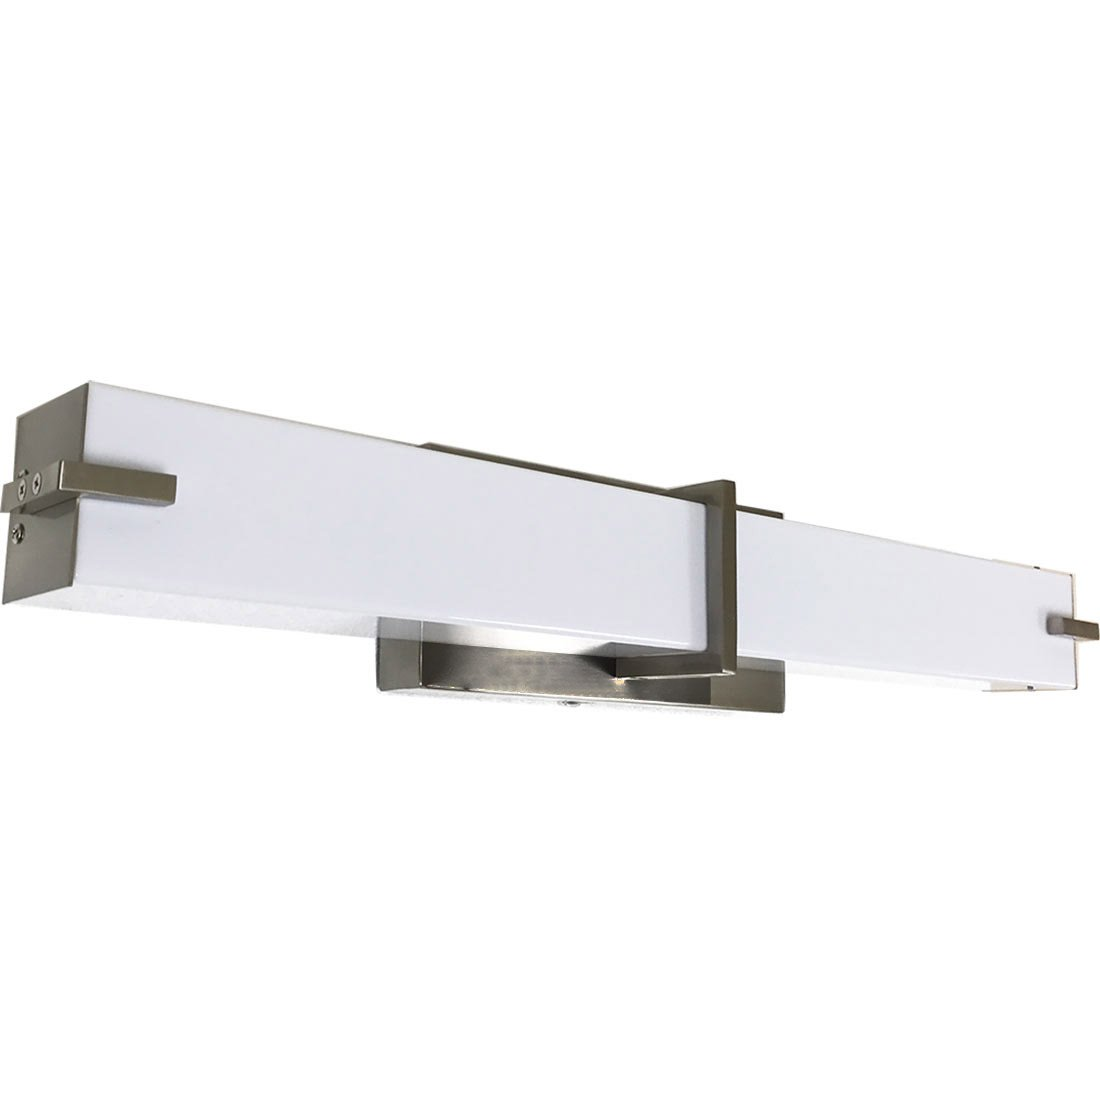 NEW Squared Modern Frosted Bathroom Vanity Light Fixture | Contemporary Sleek Dimmable LED Rectangular Bar Design | Vertical or Horizontal 24'' Lighting Brushed Nickel Wall Sconce | 3000K Warm White by Hamilton Hills